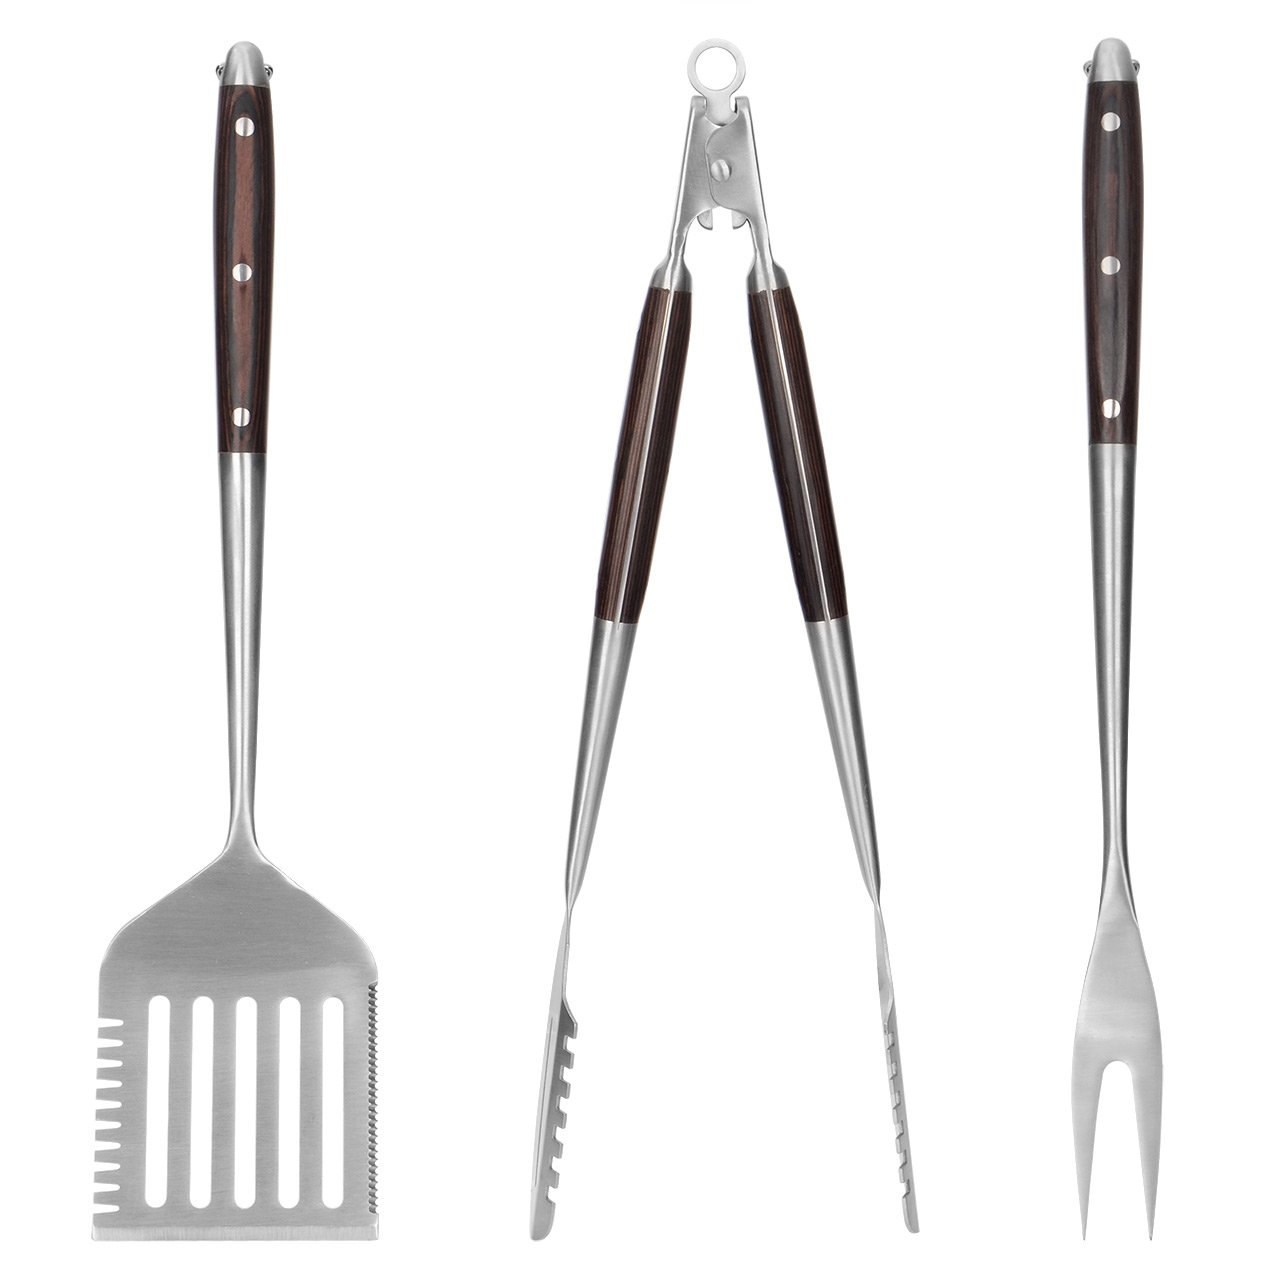 LIVINGbasics 3-Piece Heavy Duty BBQ Grilling Tools Set, Grilling Tongs, Grill Fork and 3 in 1 Spatula, Non-Slip Handles Barbecue Set